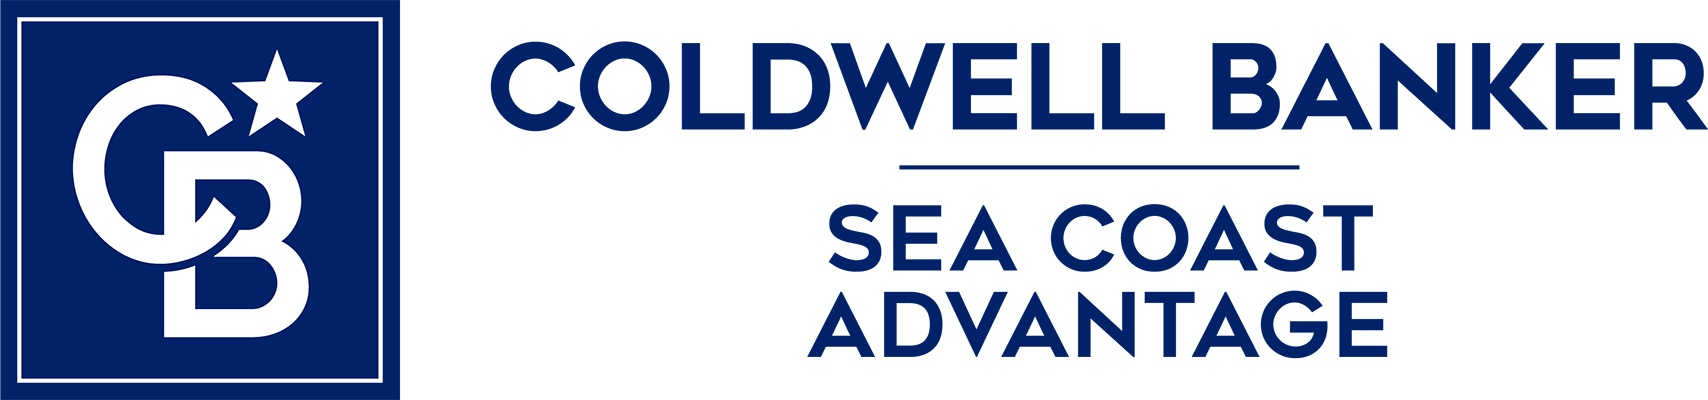 Bradley Ferrell - Coldwell Banker Sea Coast Advantage Realty